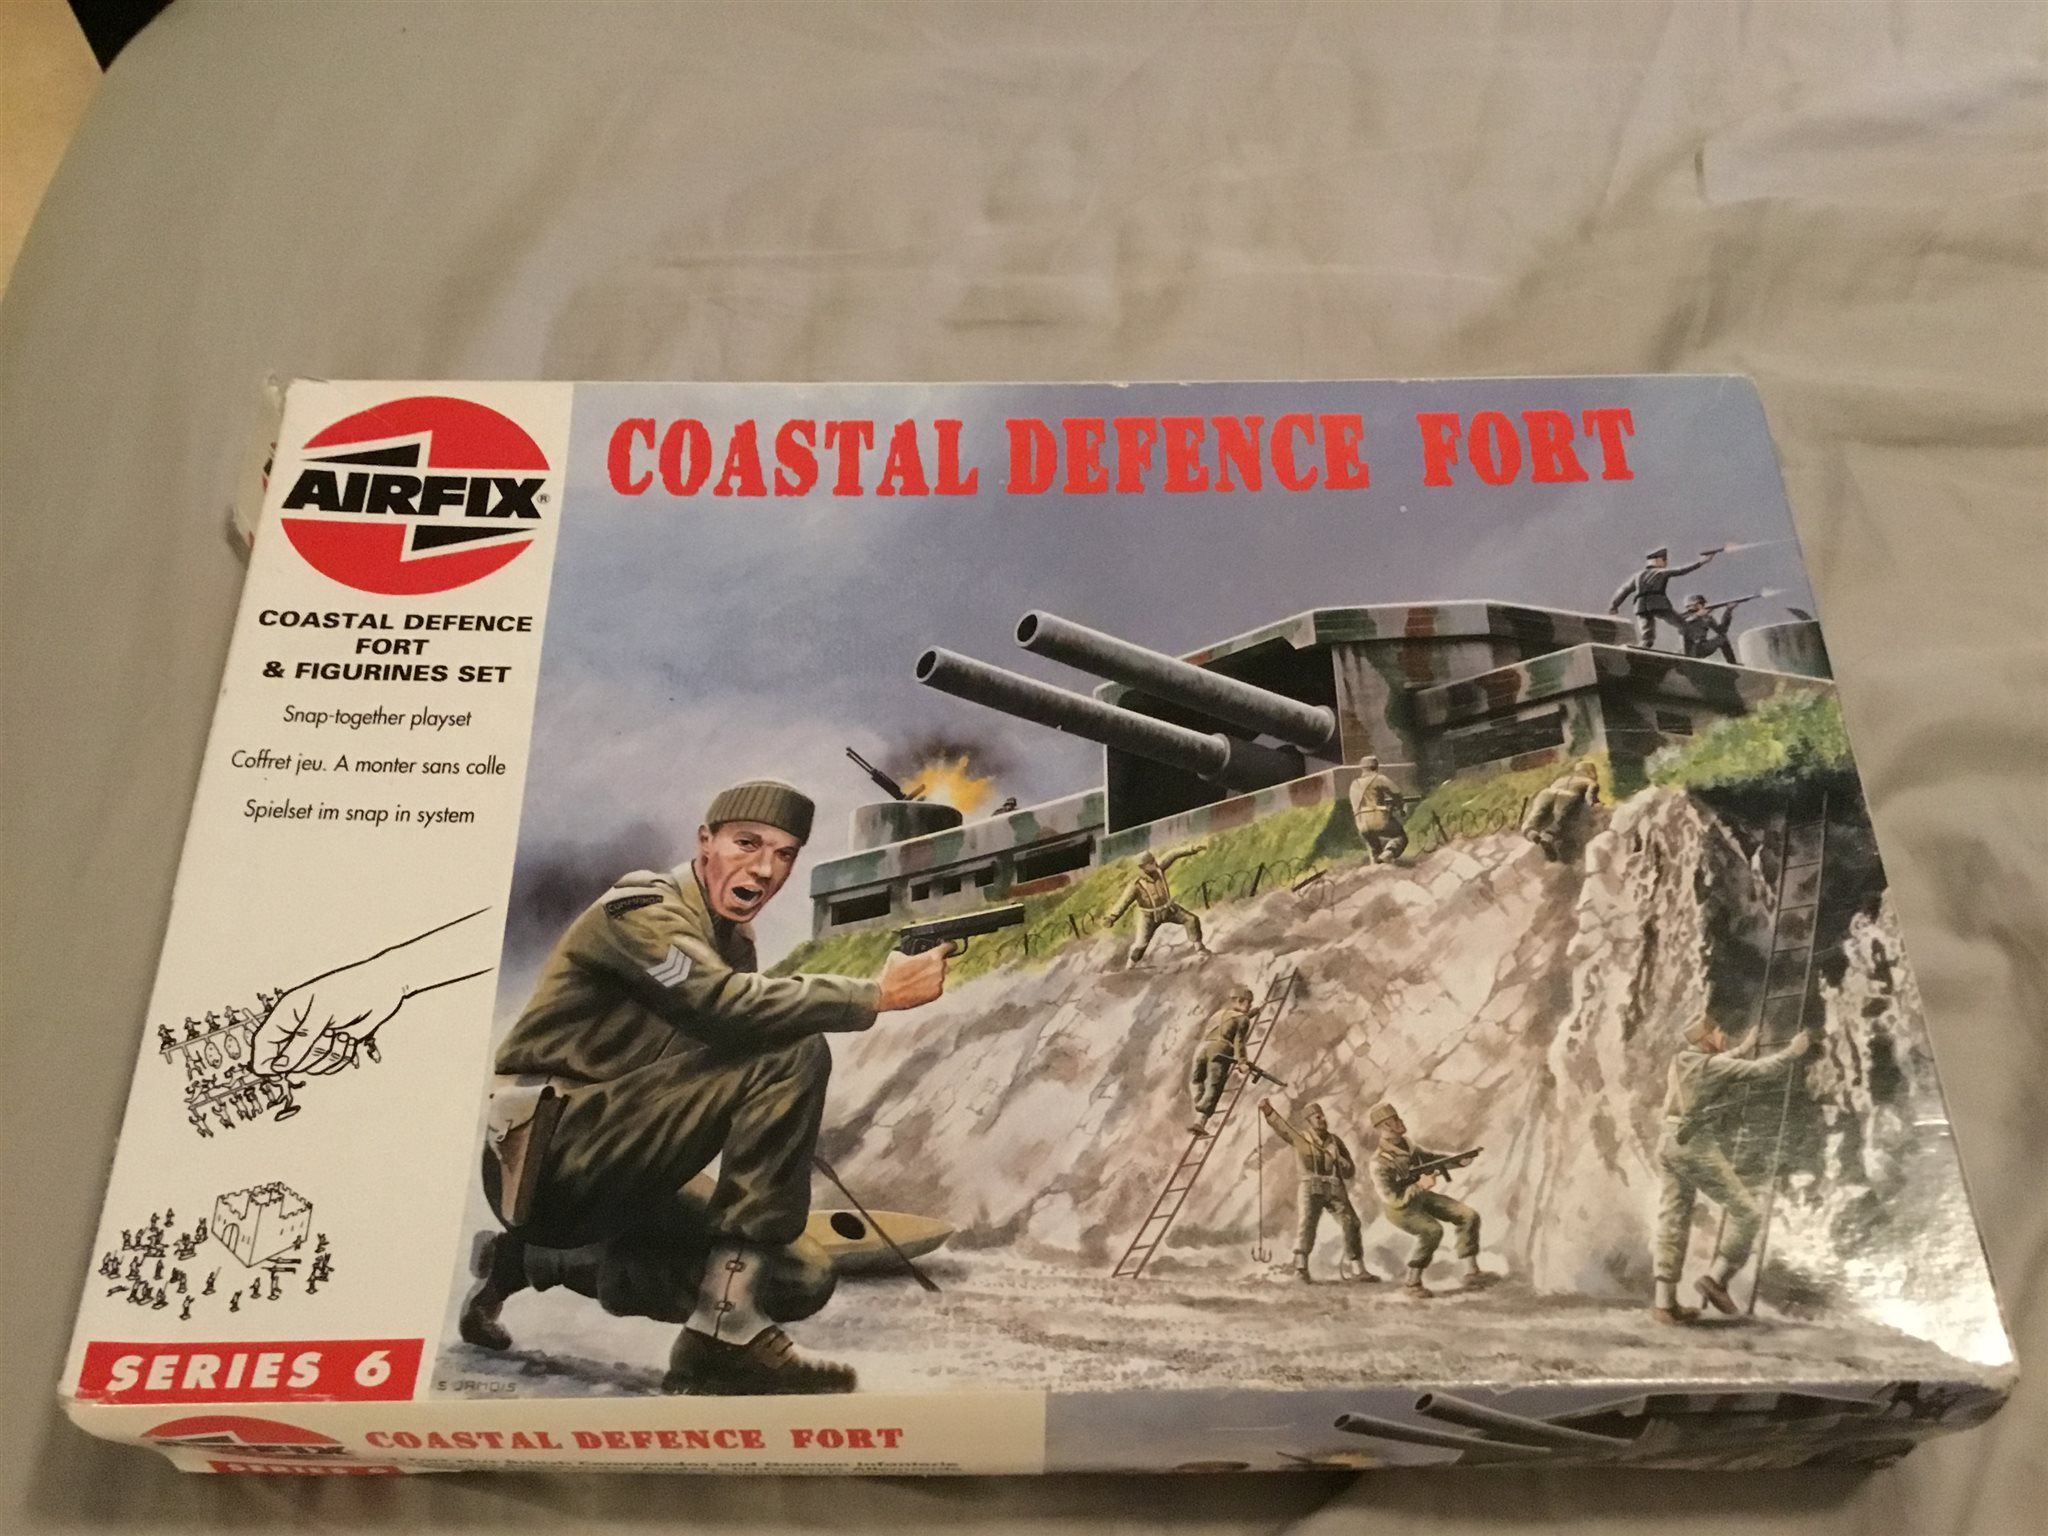 Airfix coastal defence fort